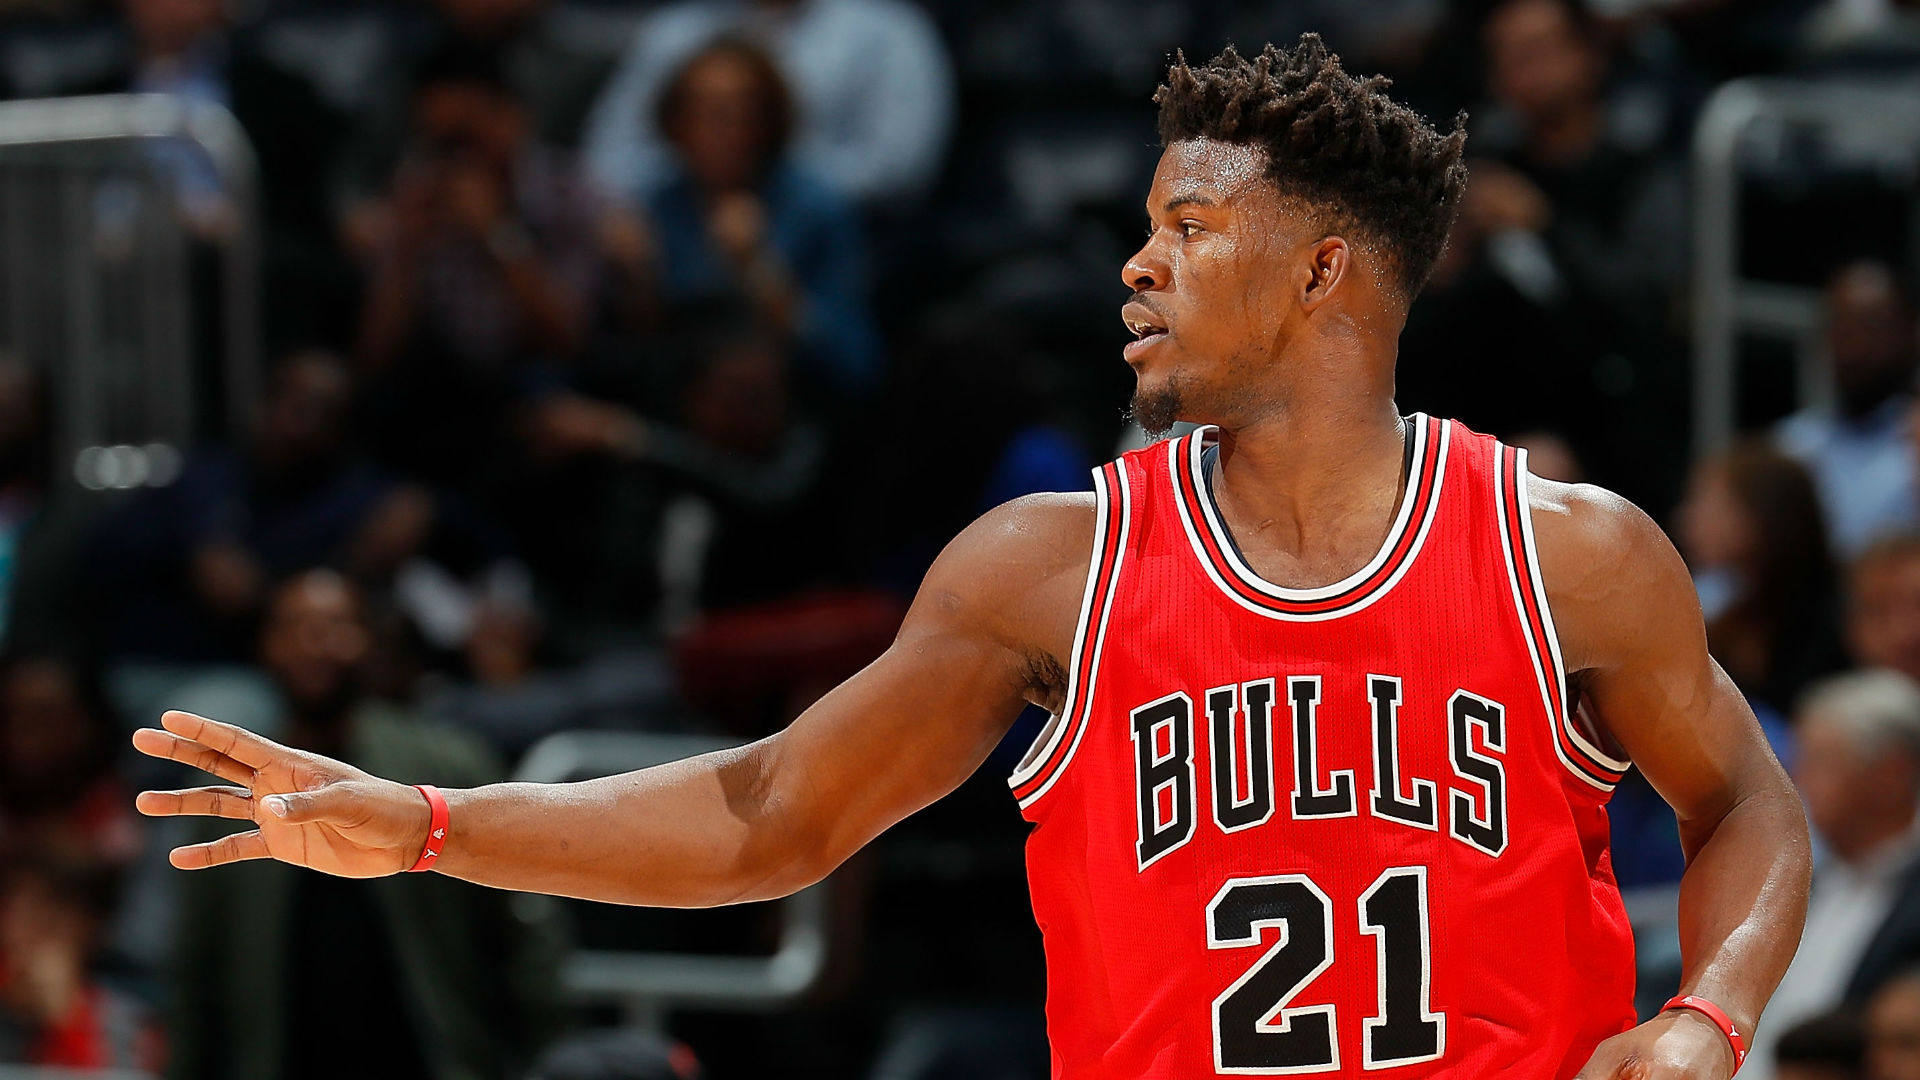 Jimmy Butler gives out phone number to critics during live presser